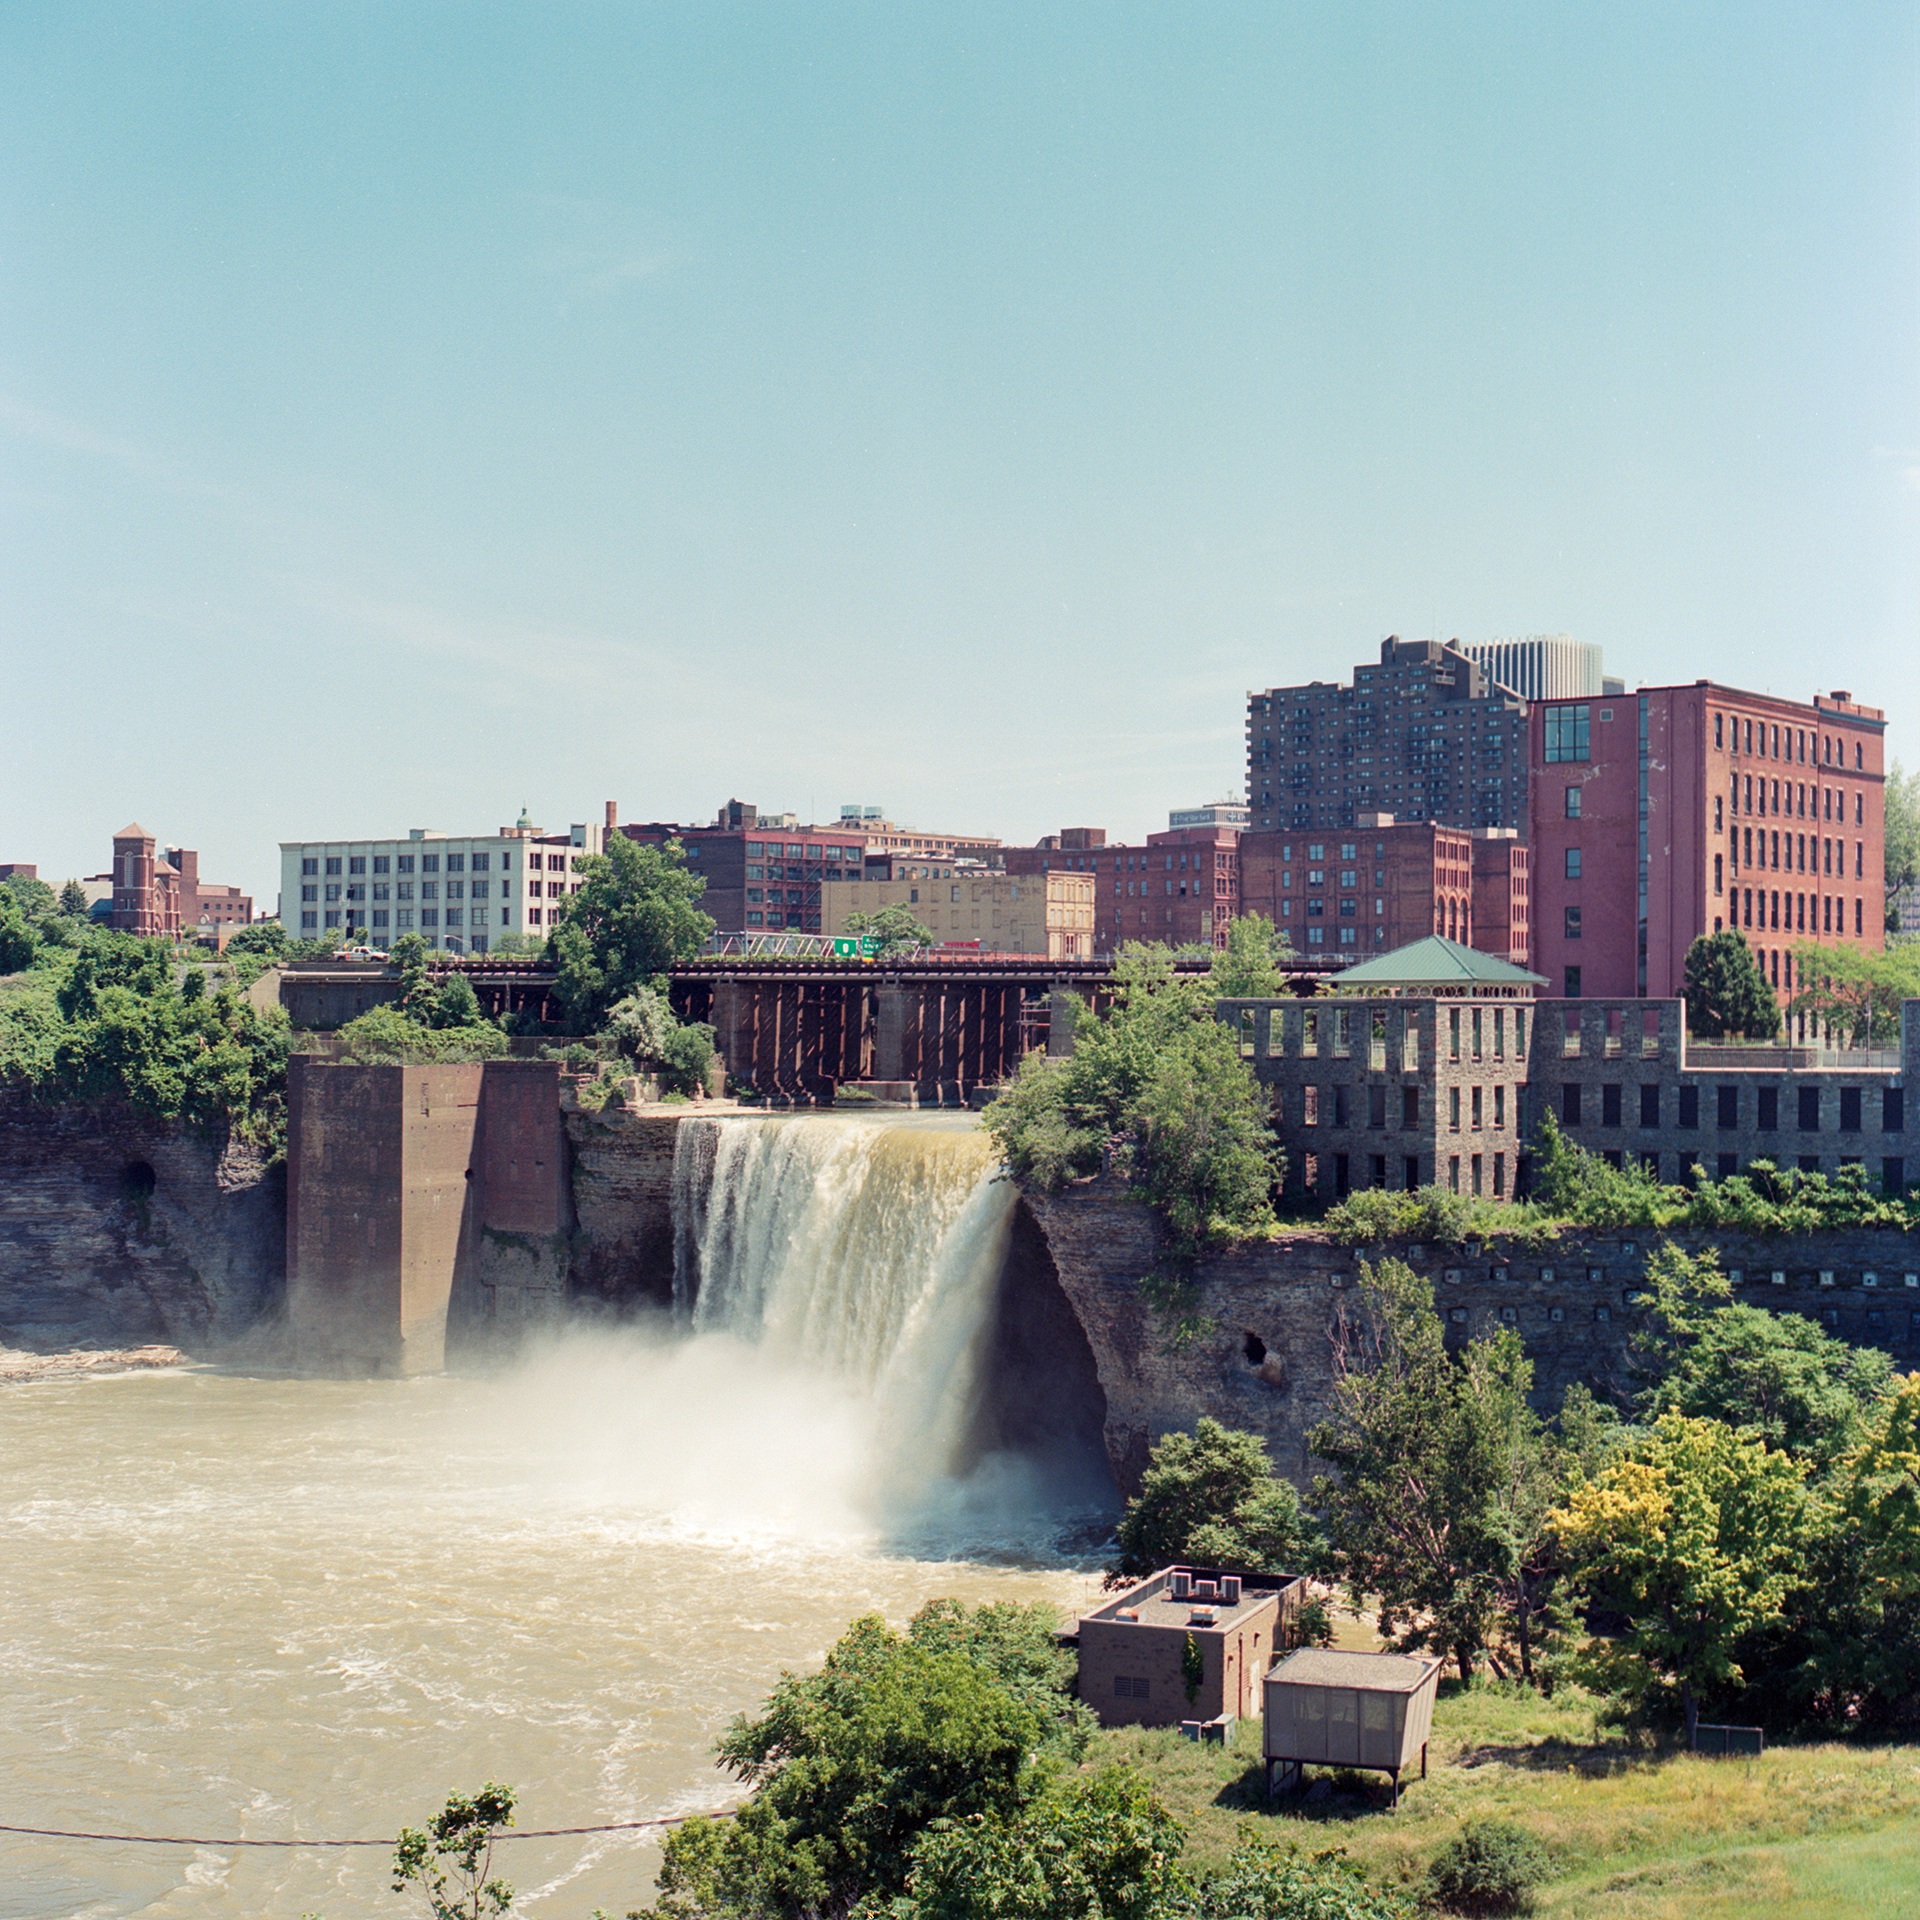 Genesee falls in Rochester New York